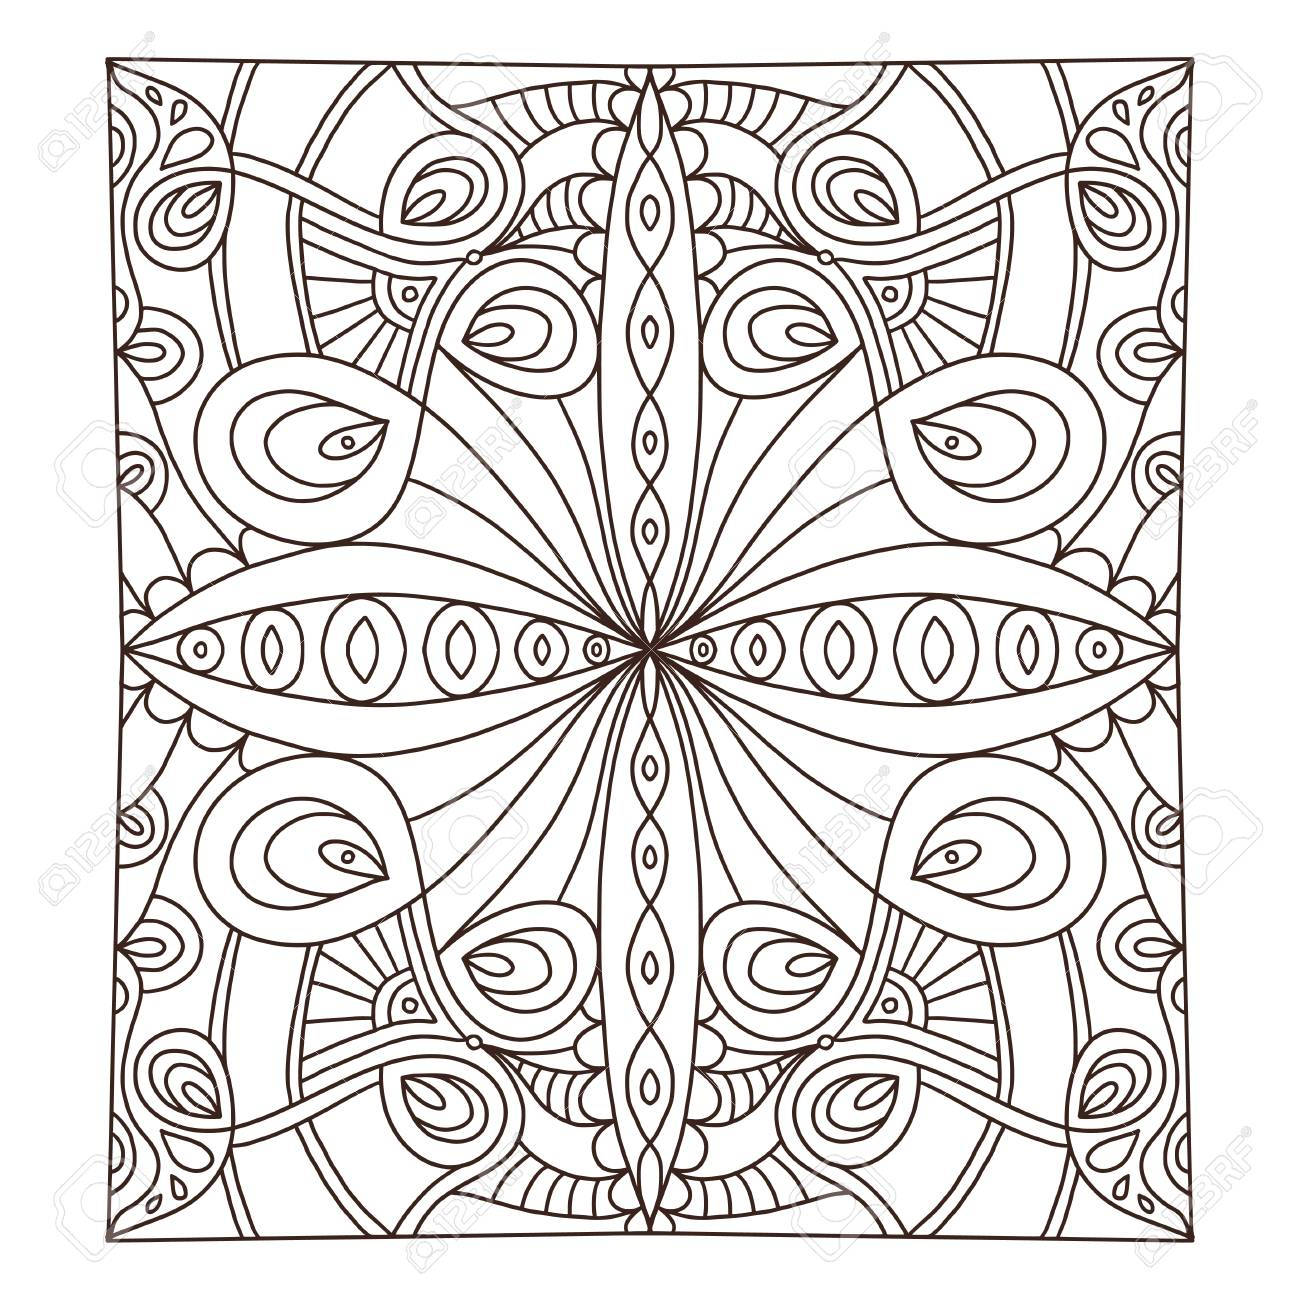 Carpet tile ornament pattern. Adult coloring book page. Interior..